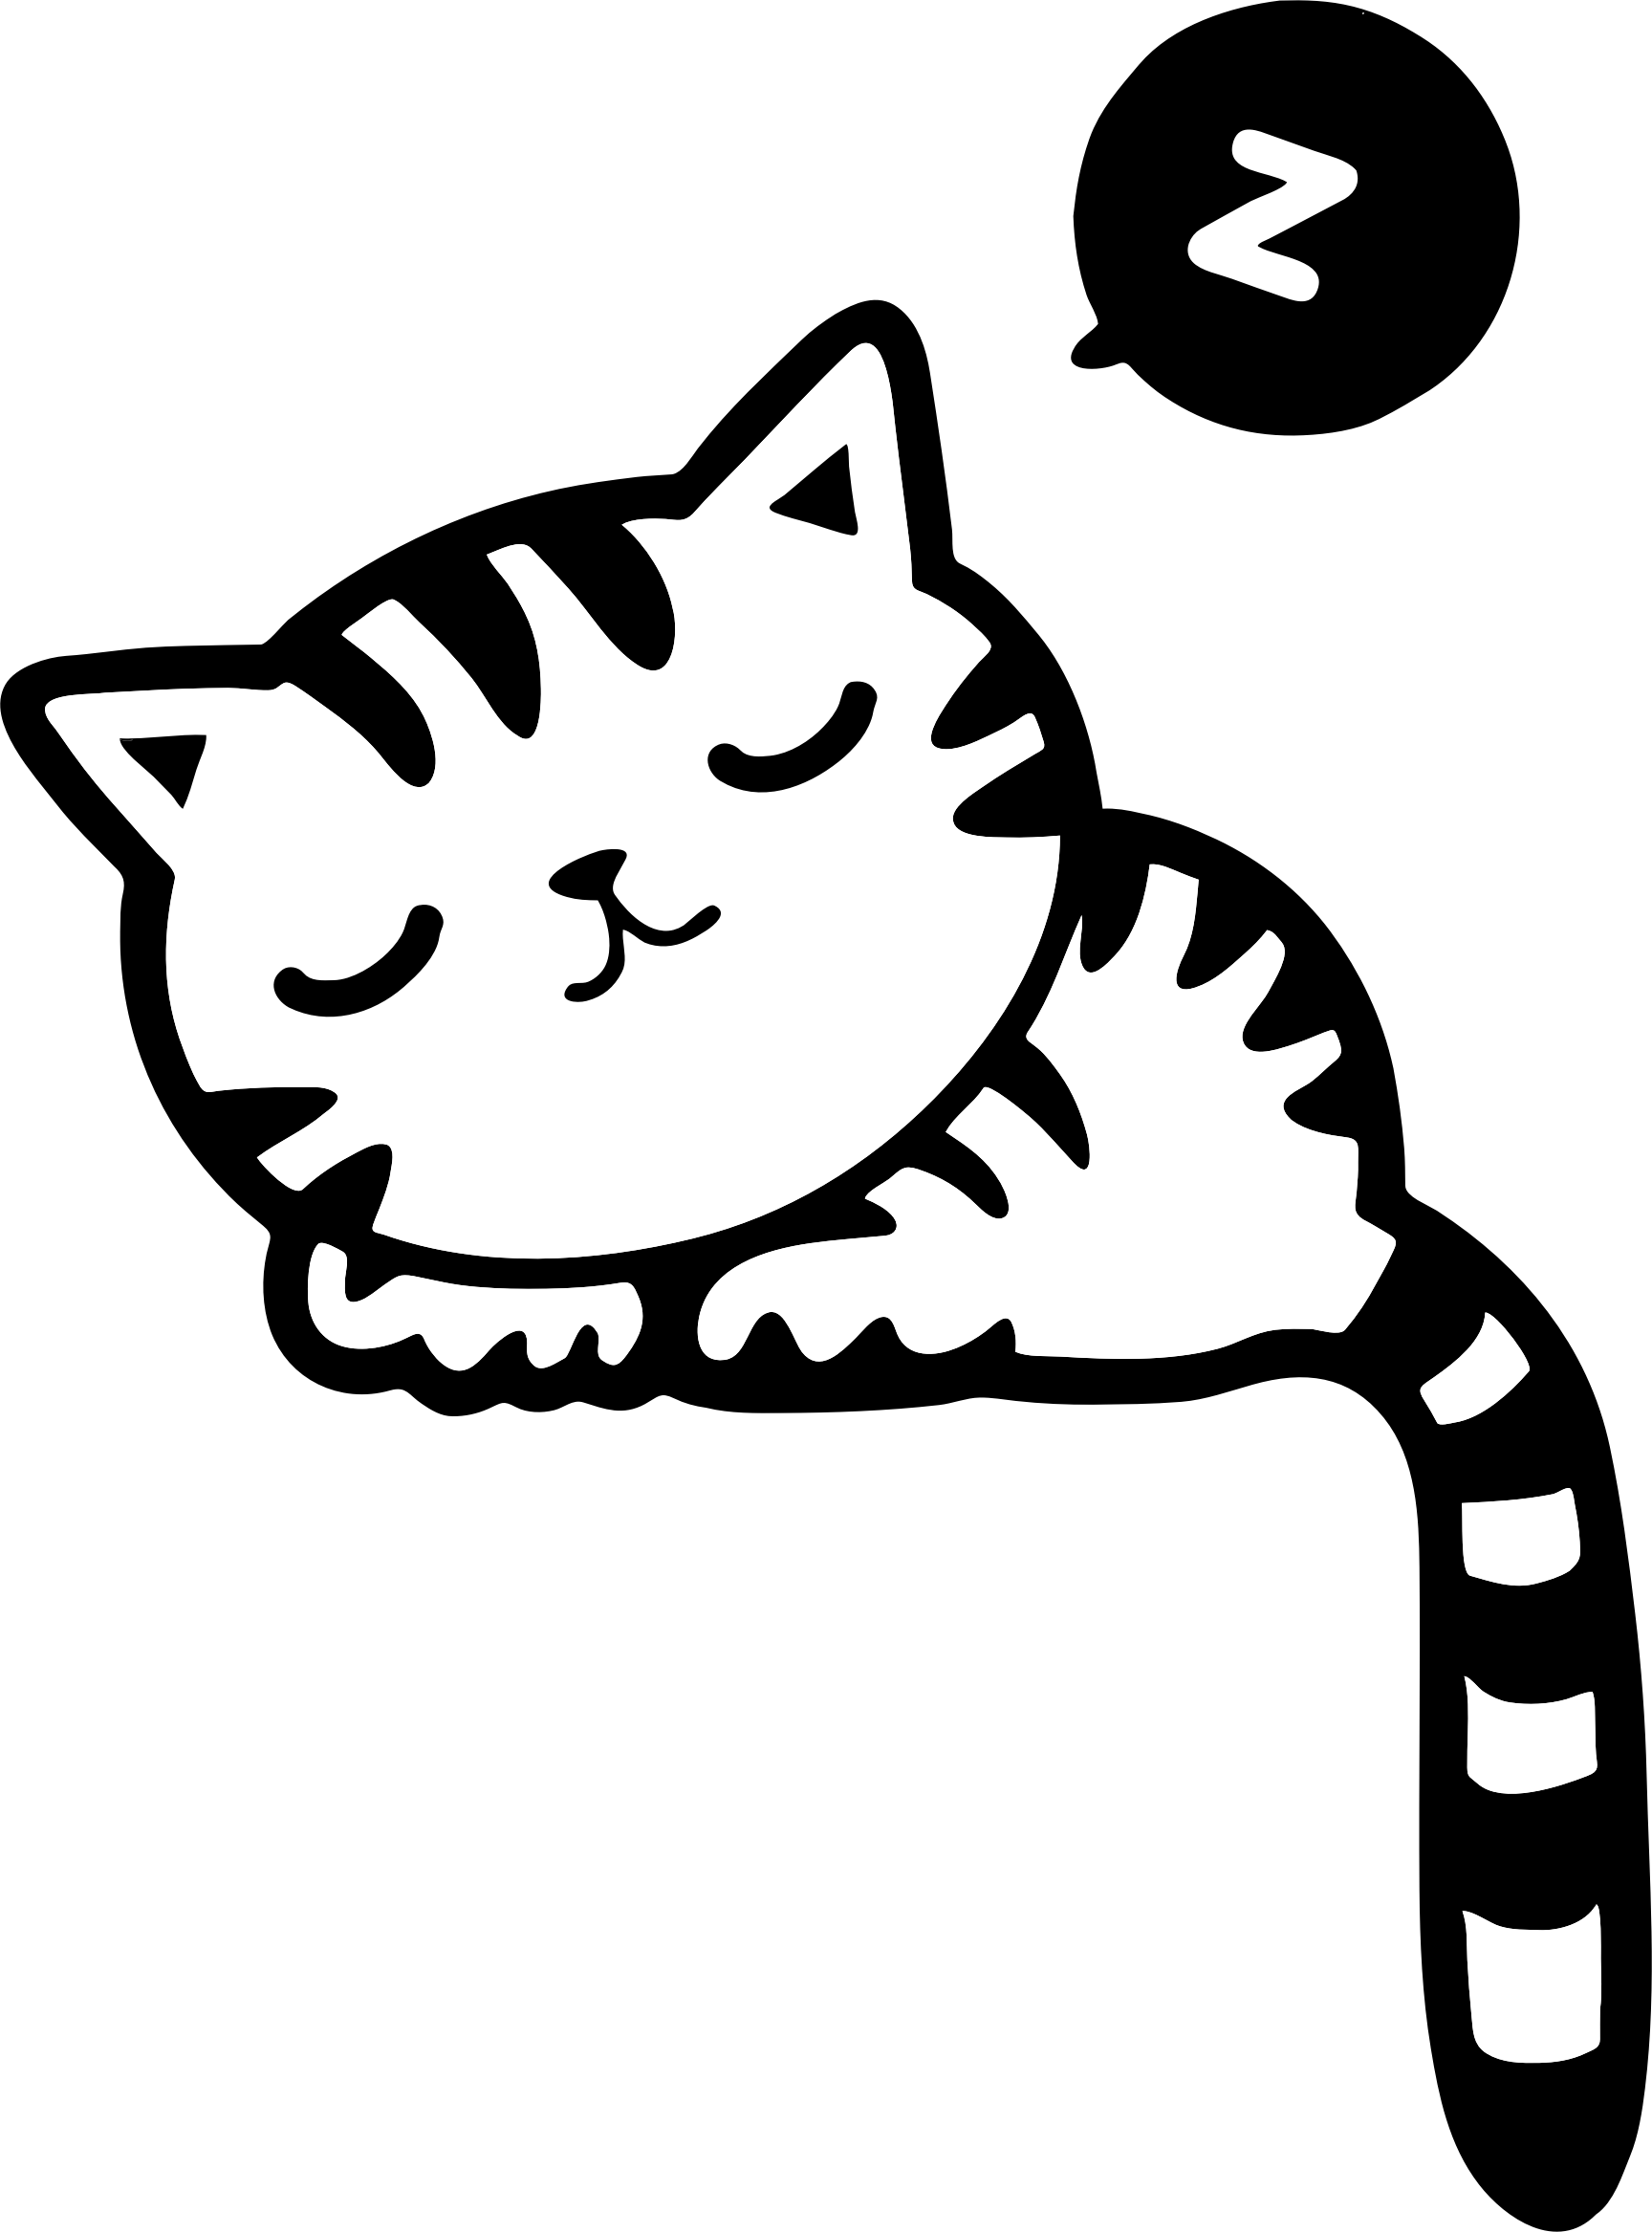 Sleeping cat png. Kitty icons free and